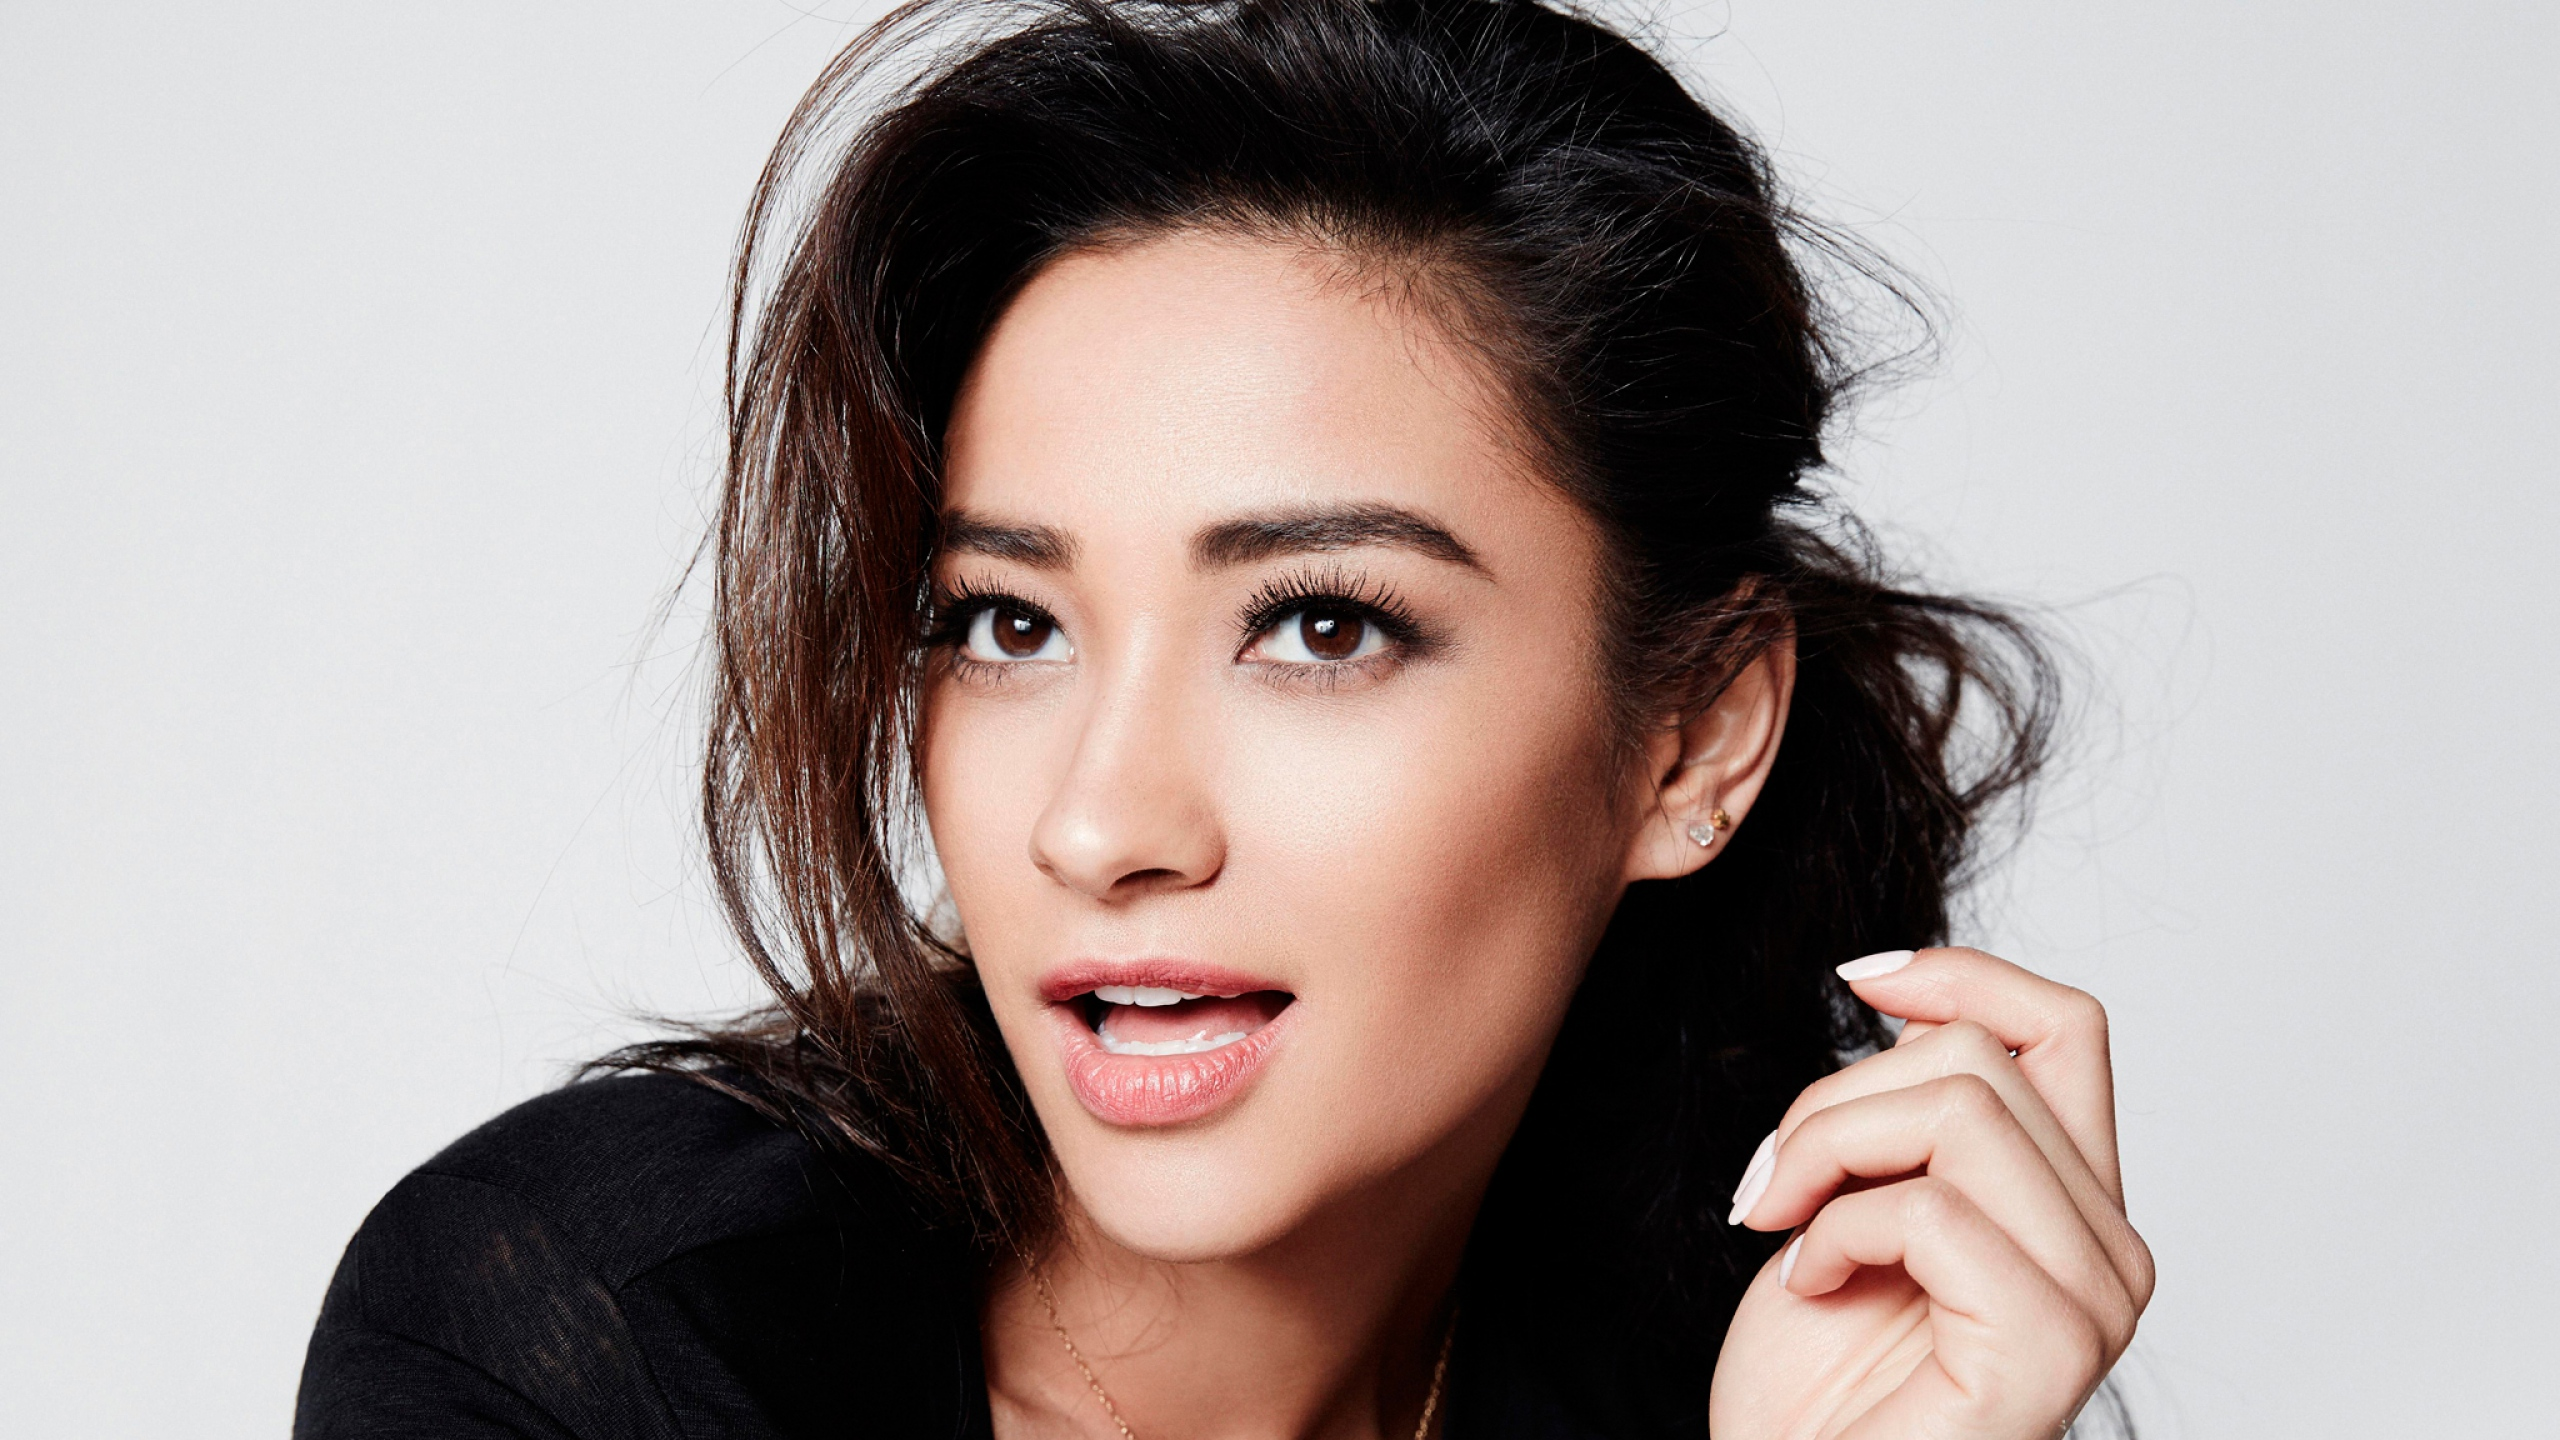 16 Beautiful Hd Shay Mitchell Wallpapers Hdwallsource Com